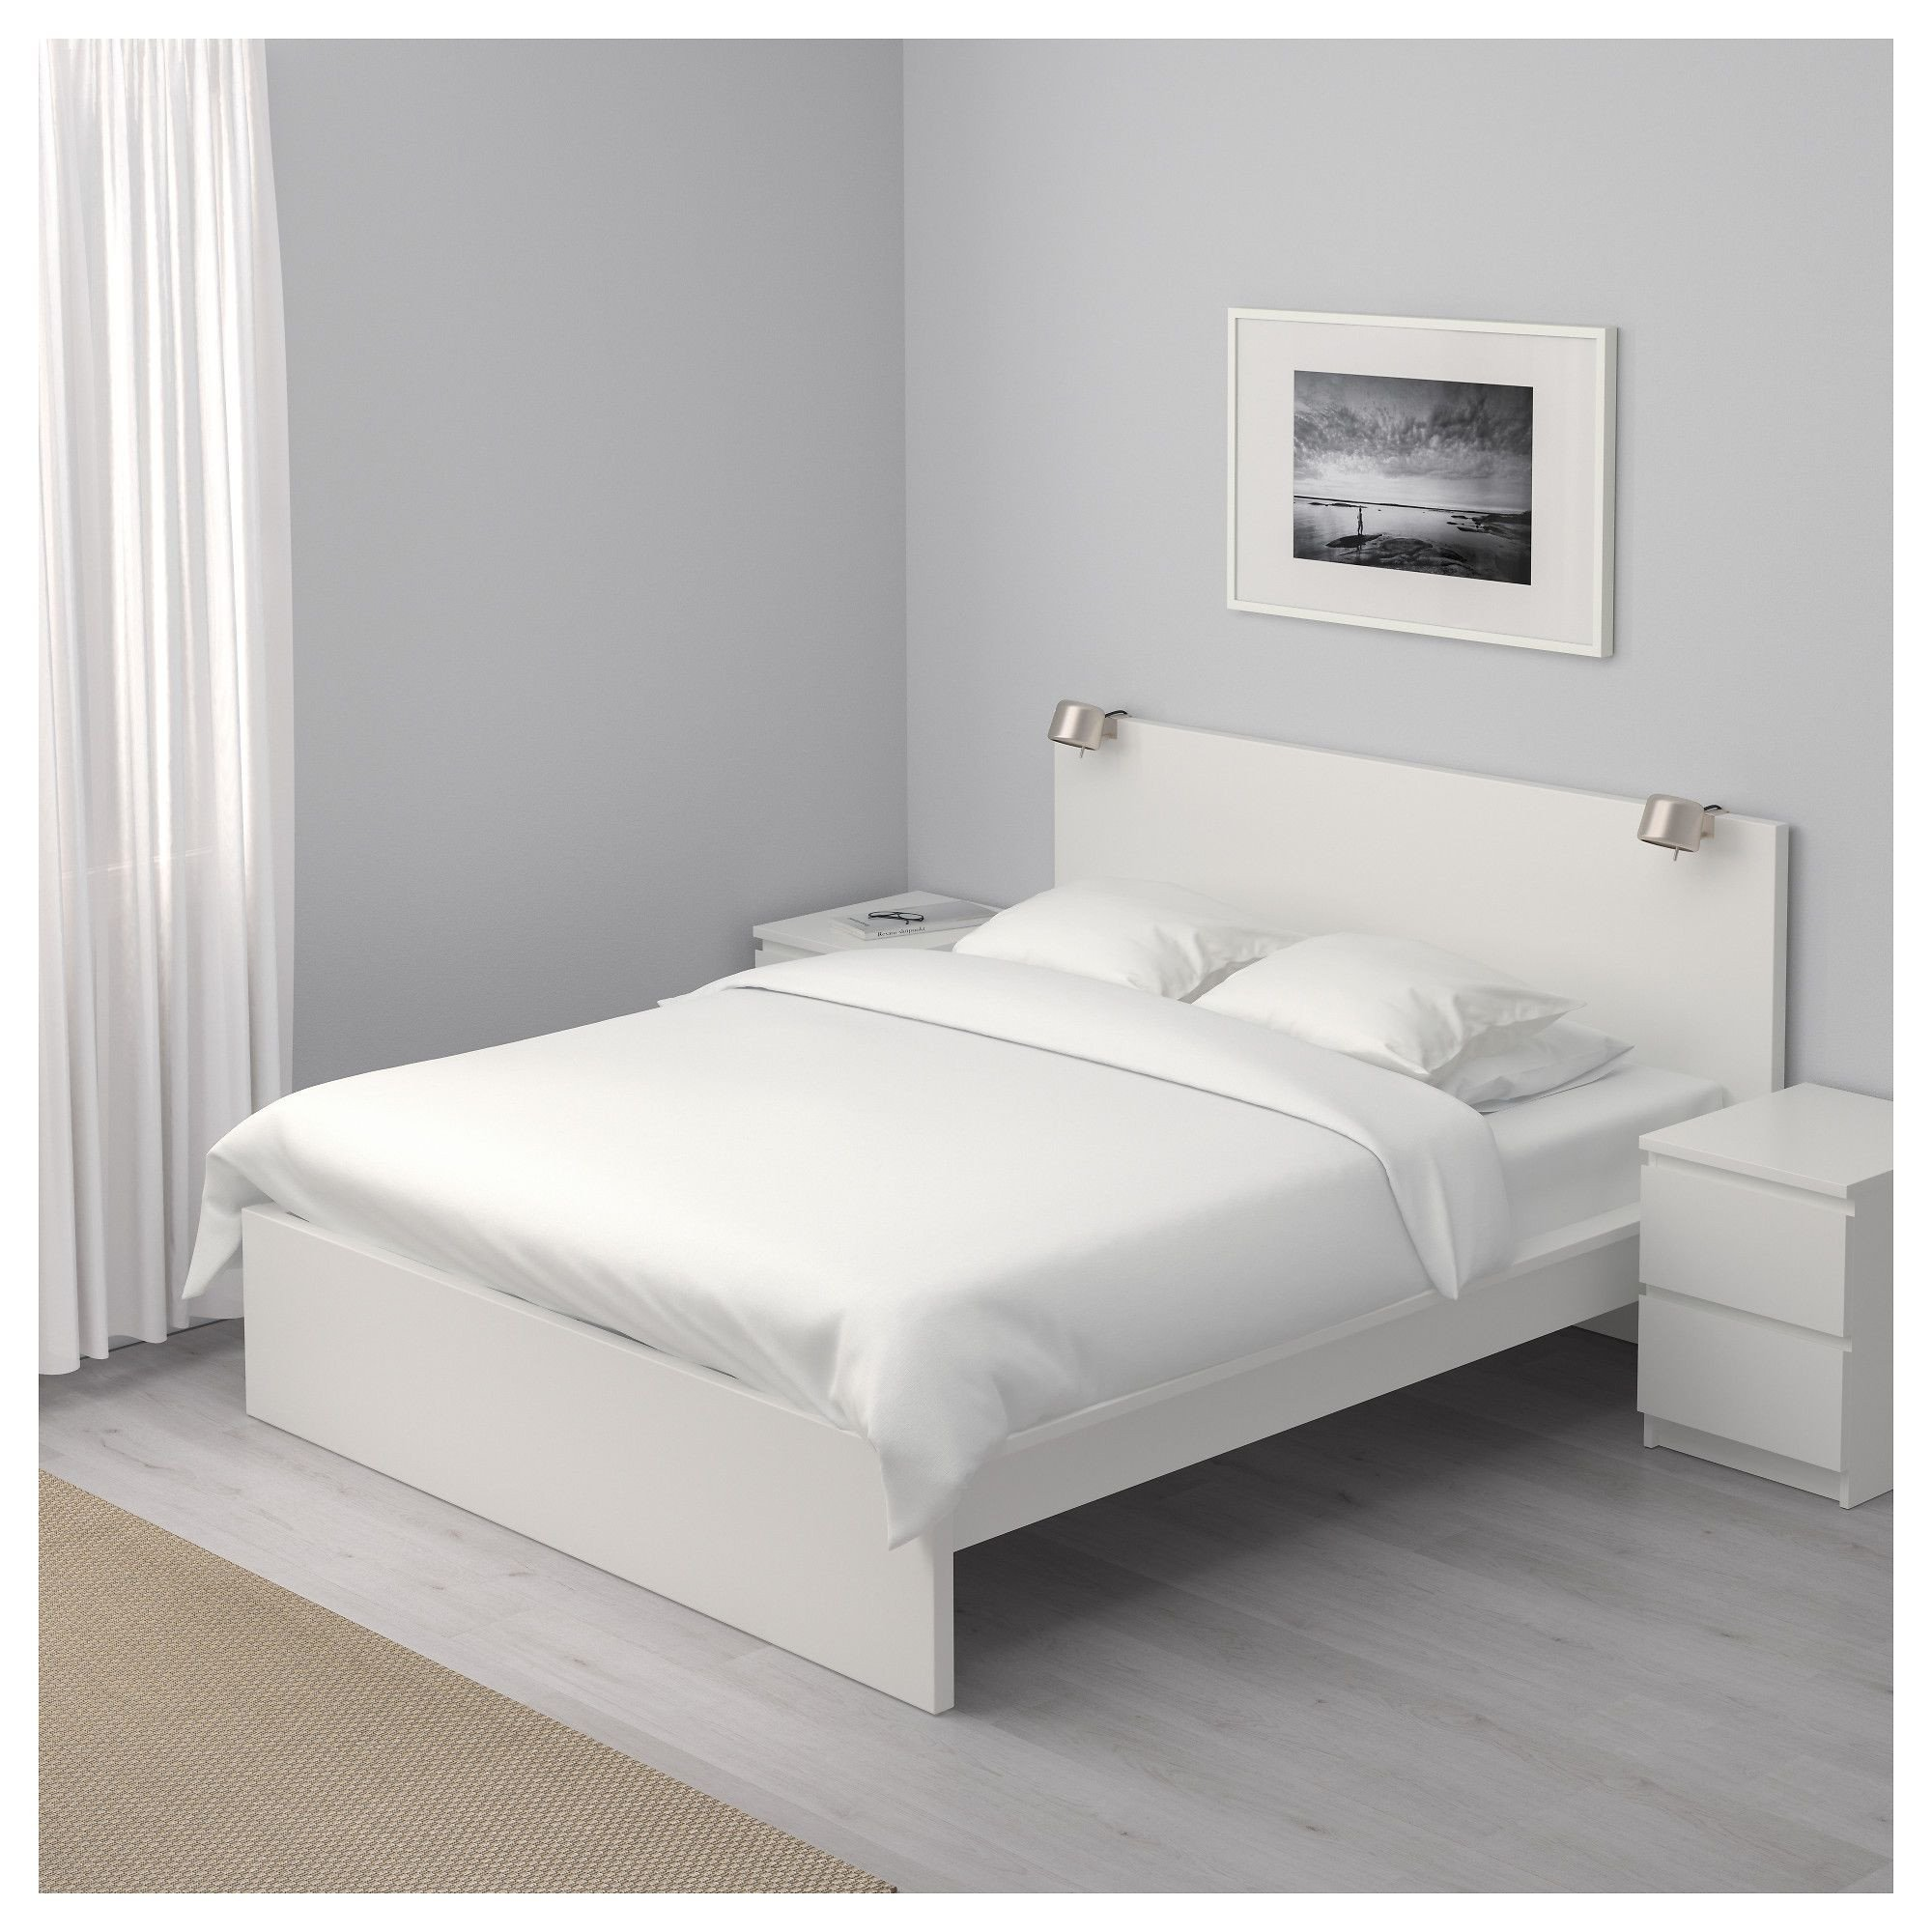 Queen Bedroom Set Ikea Beautiful Ikea Malm White Luröy Bed Frame High